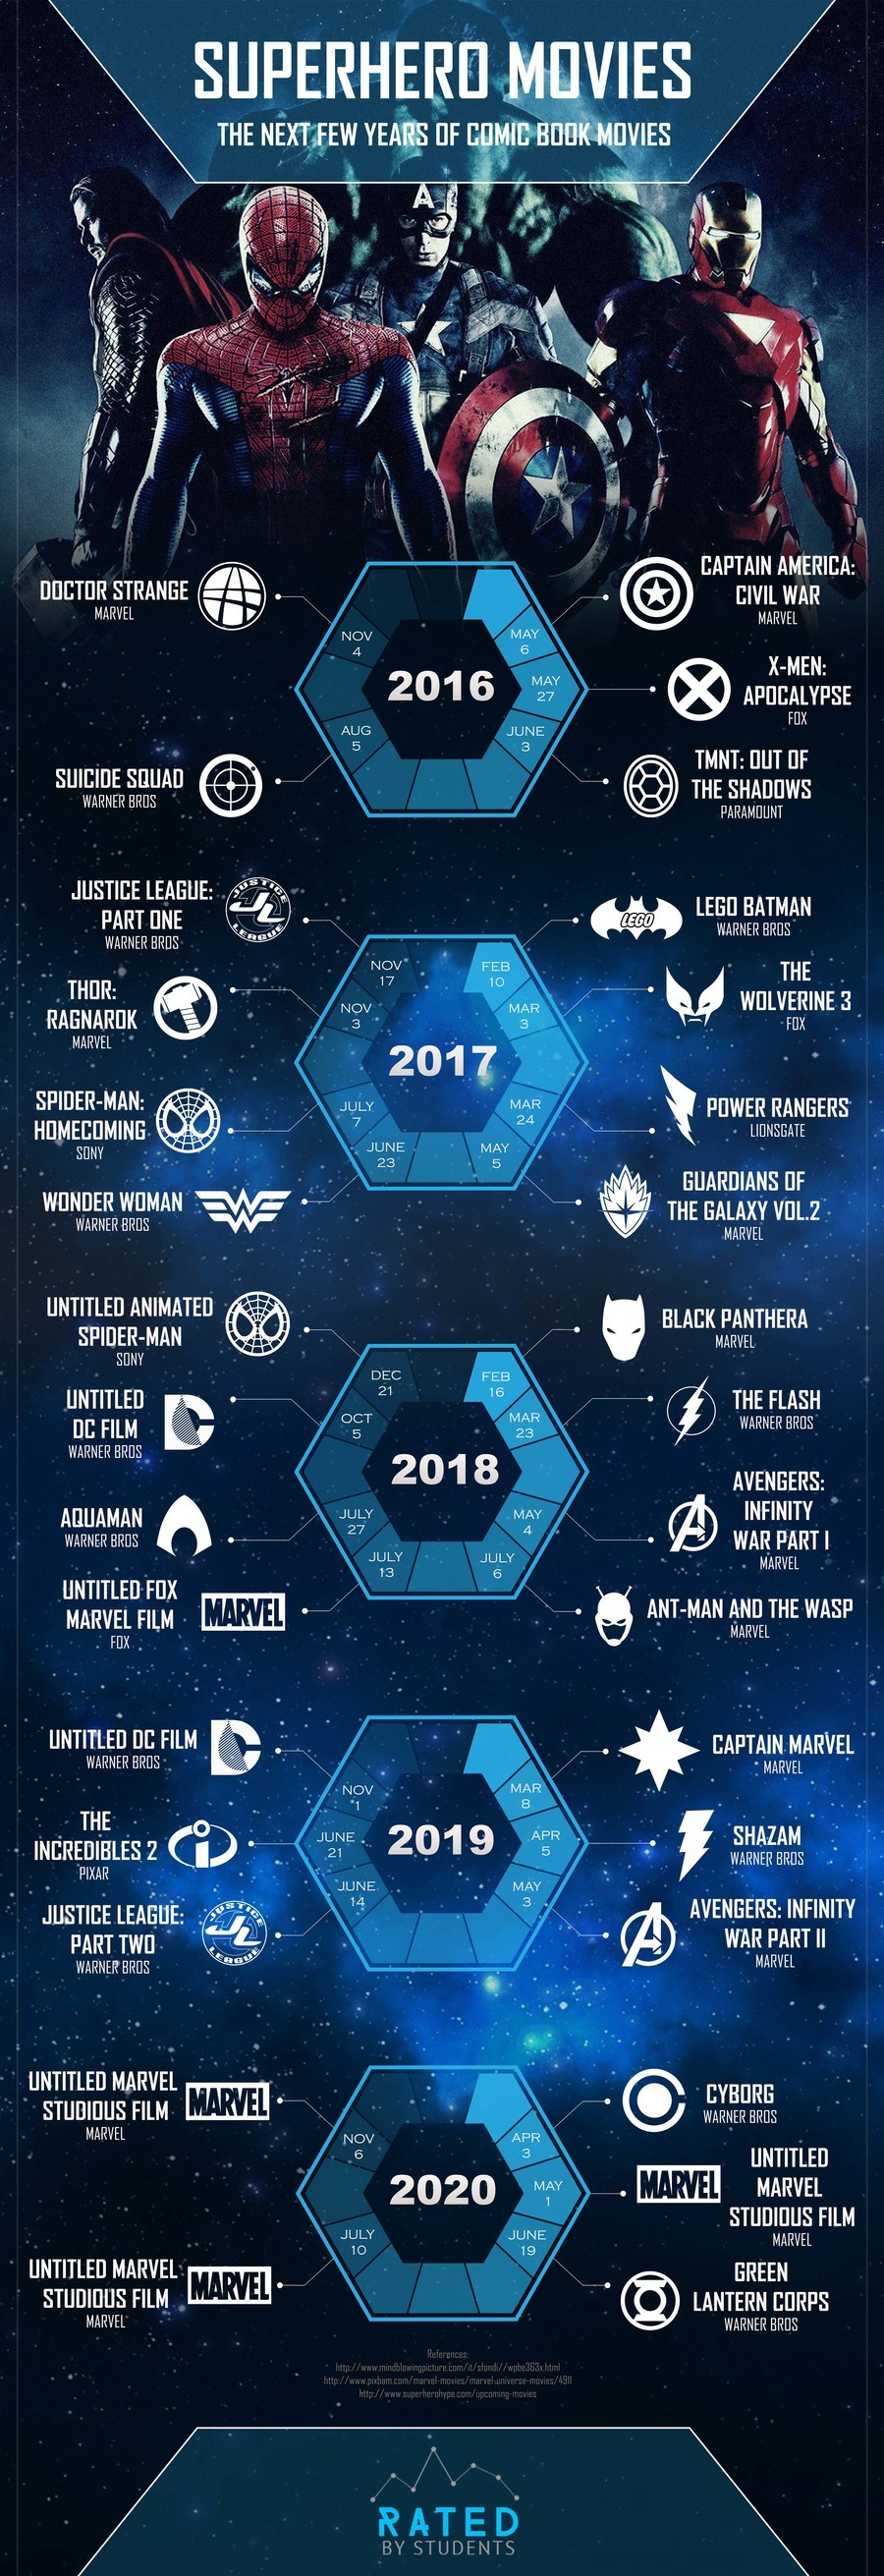 The most awaited superhero movies. Do you like comic book movies? There will be a lot of them in the next few years (more than 30, actually). Here you can check